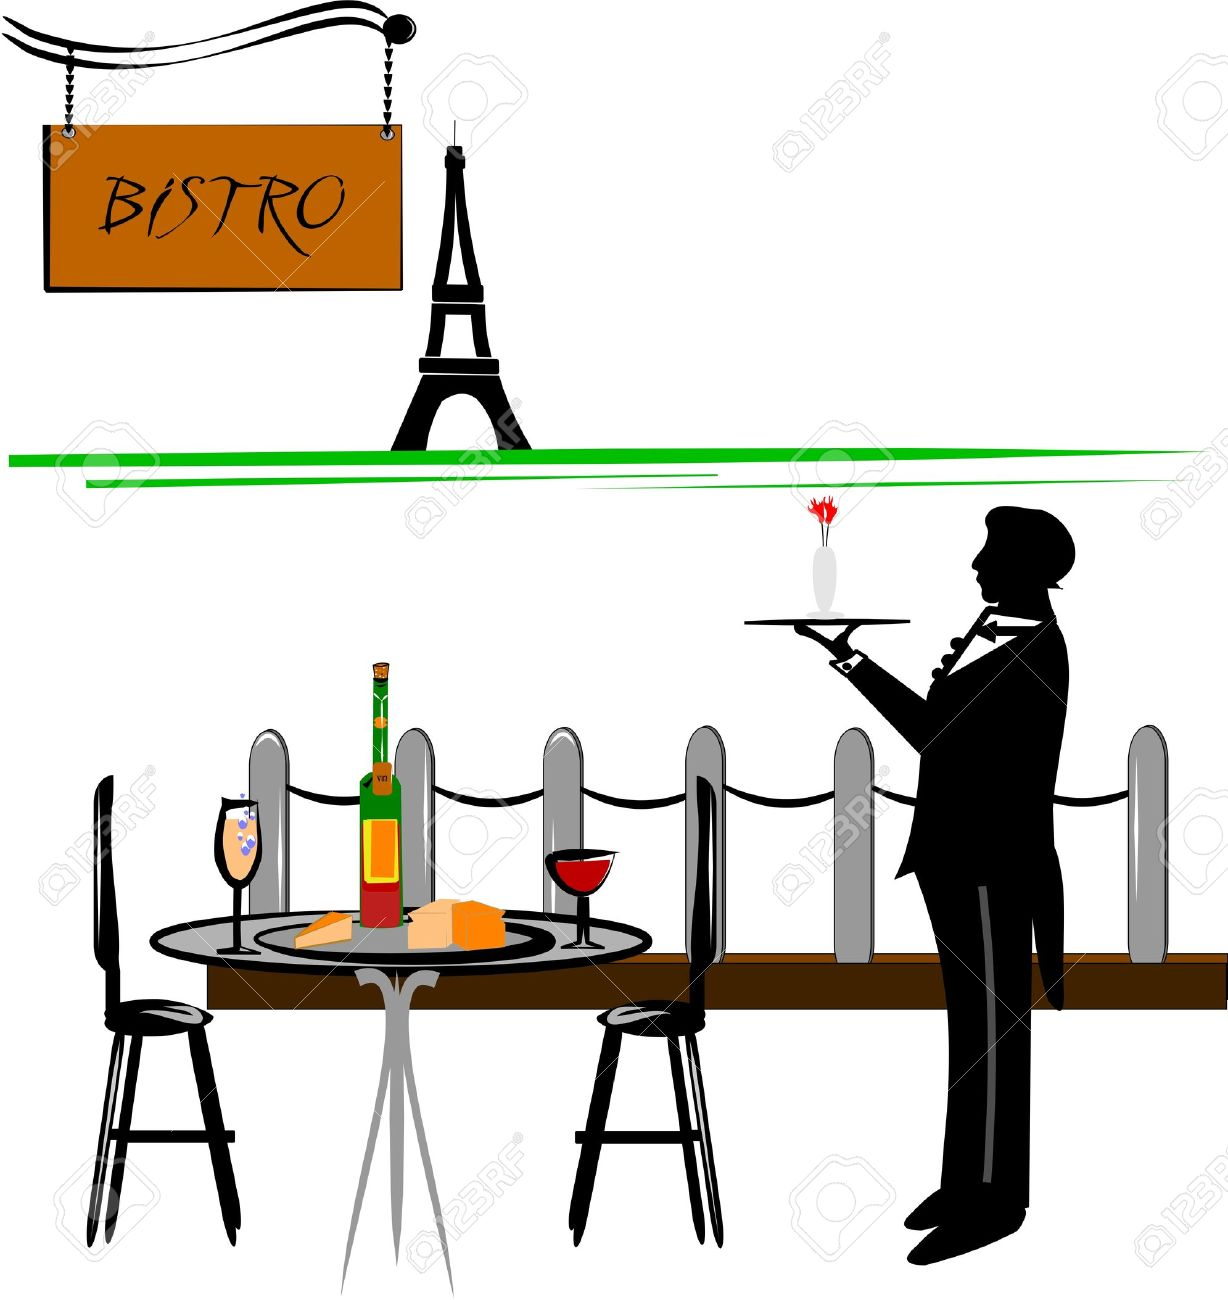 restaurant table lamp clipart - Clipground